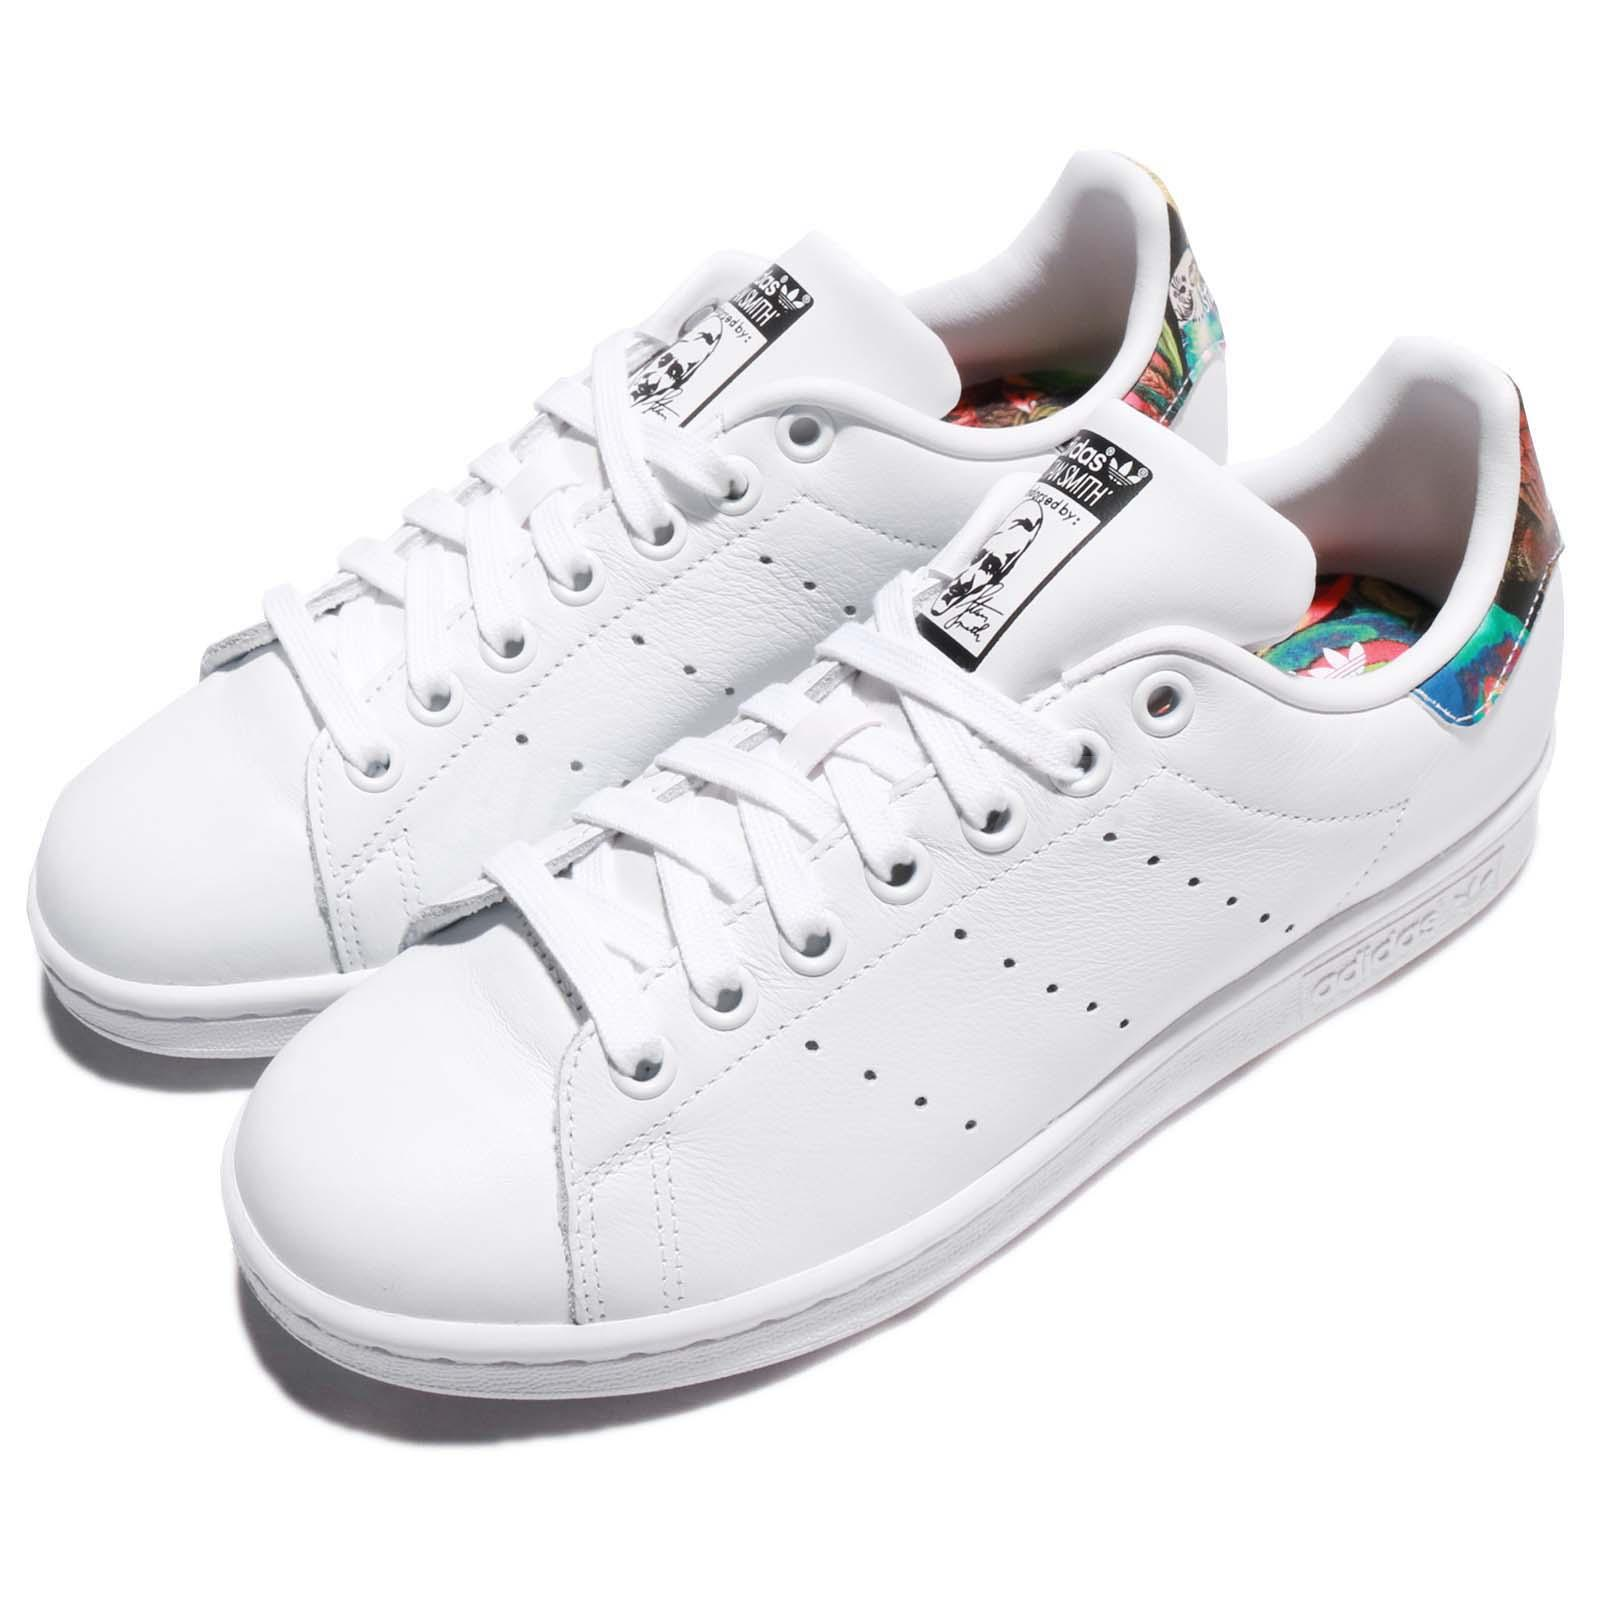 Détails sur adidas Originals Stan Smith W FARM Company White Multi-Color  Women Shoes BZ0411